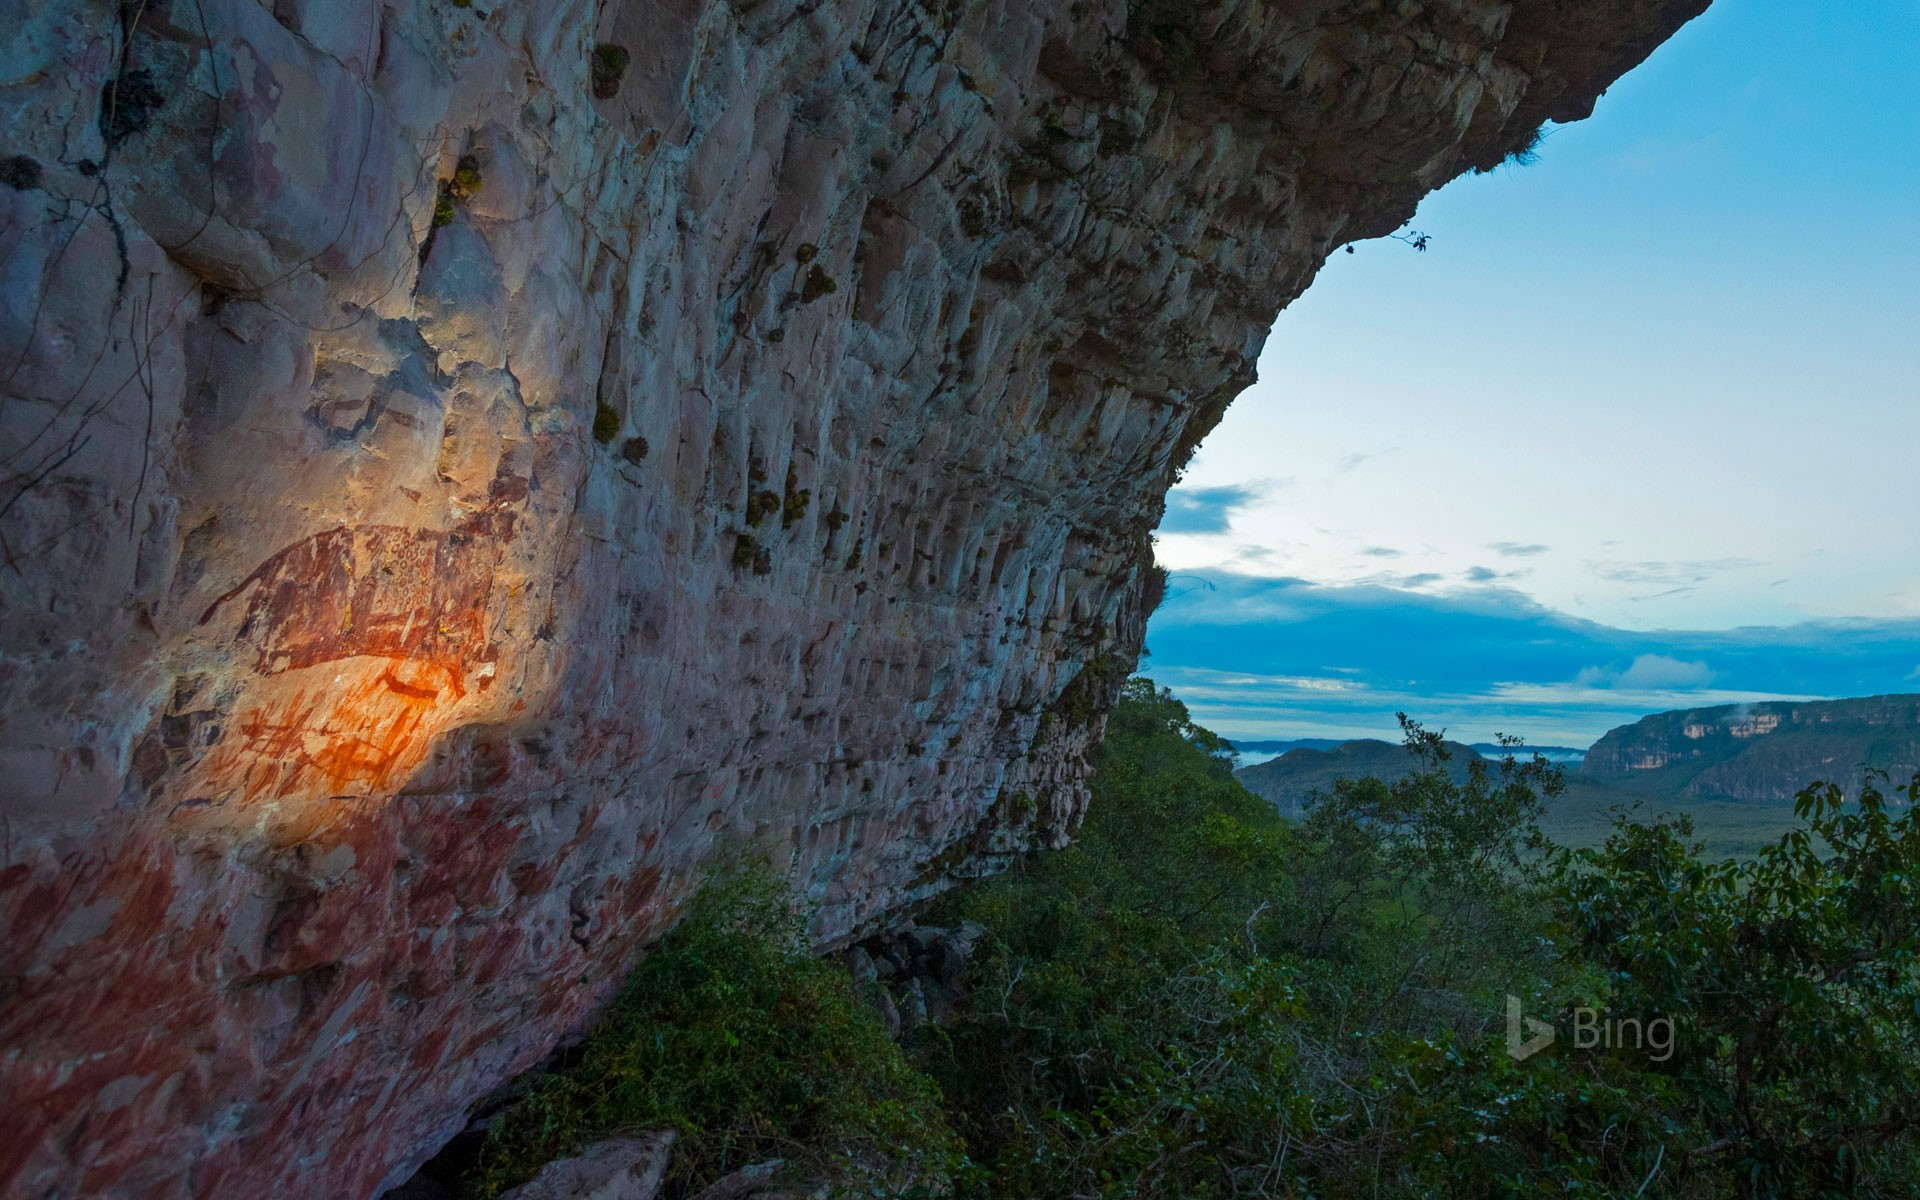 Ancient rock art in Chiribiquete National Natural Park, Colombia